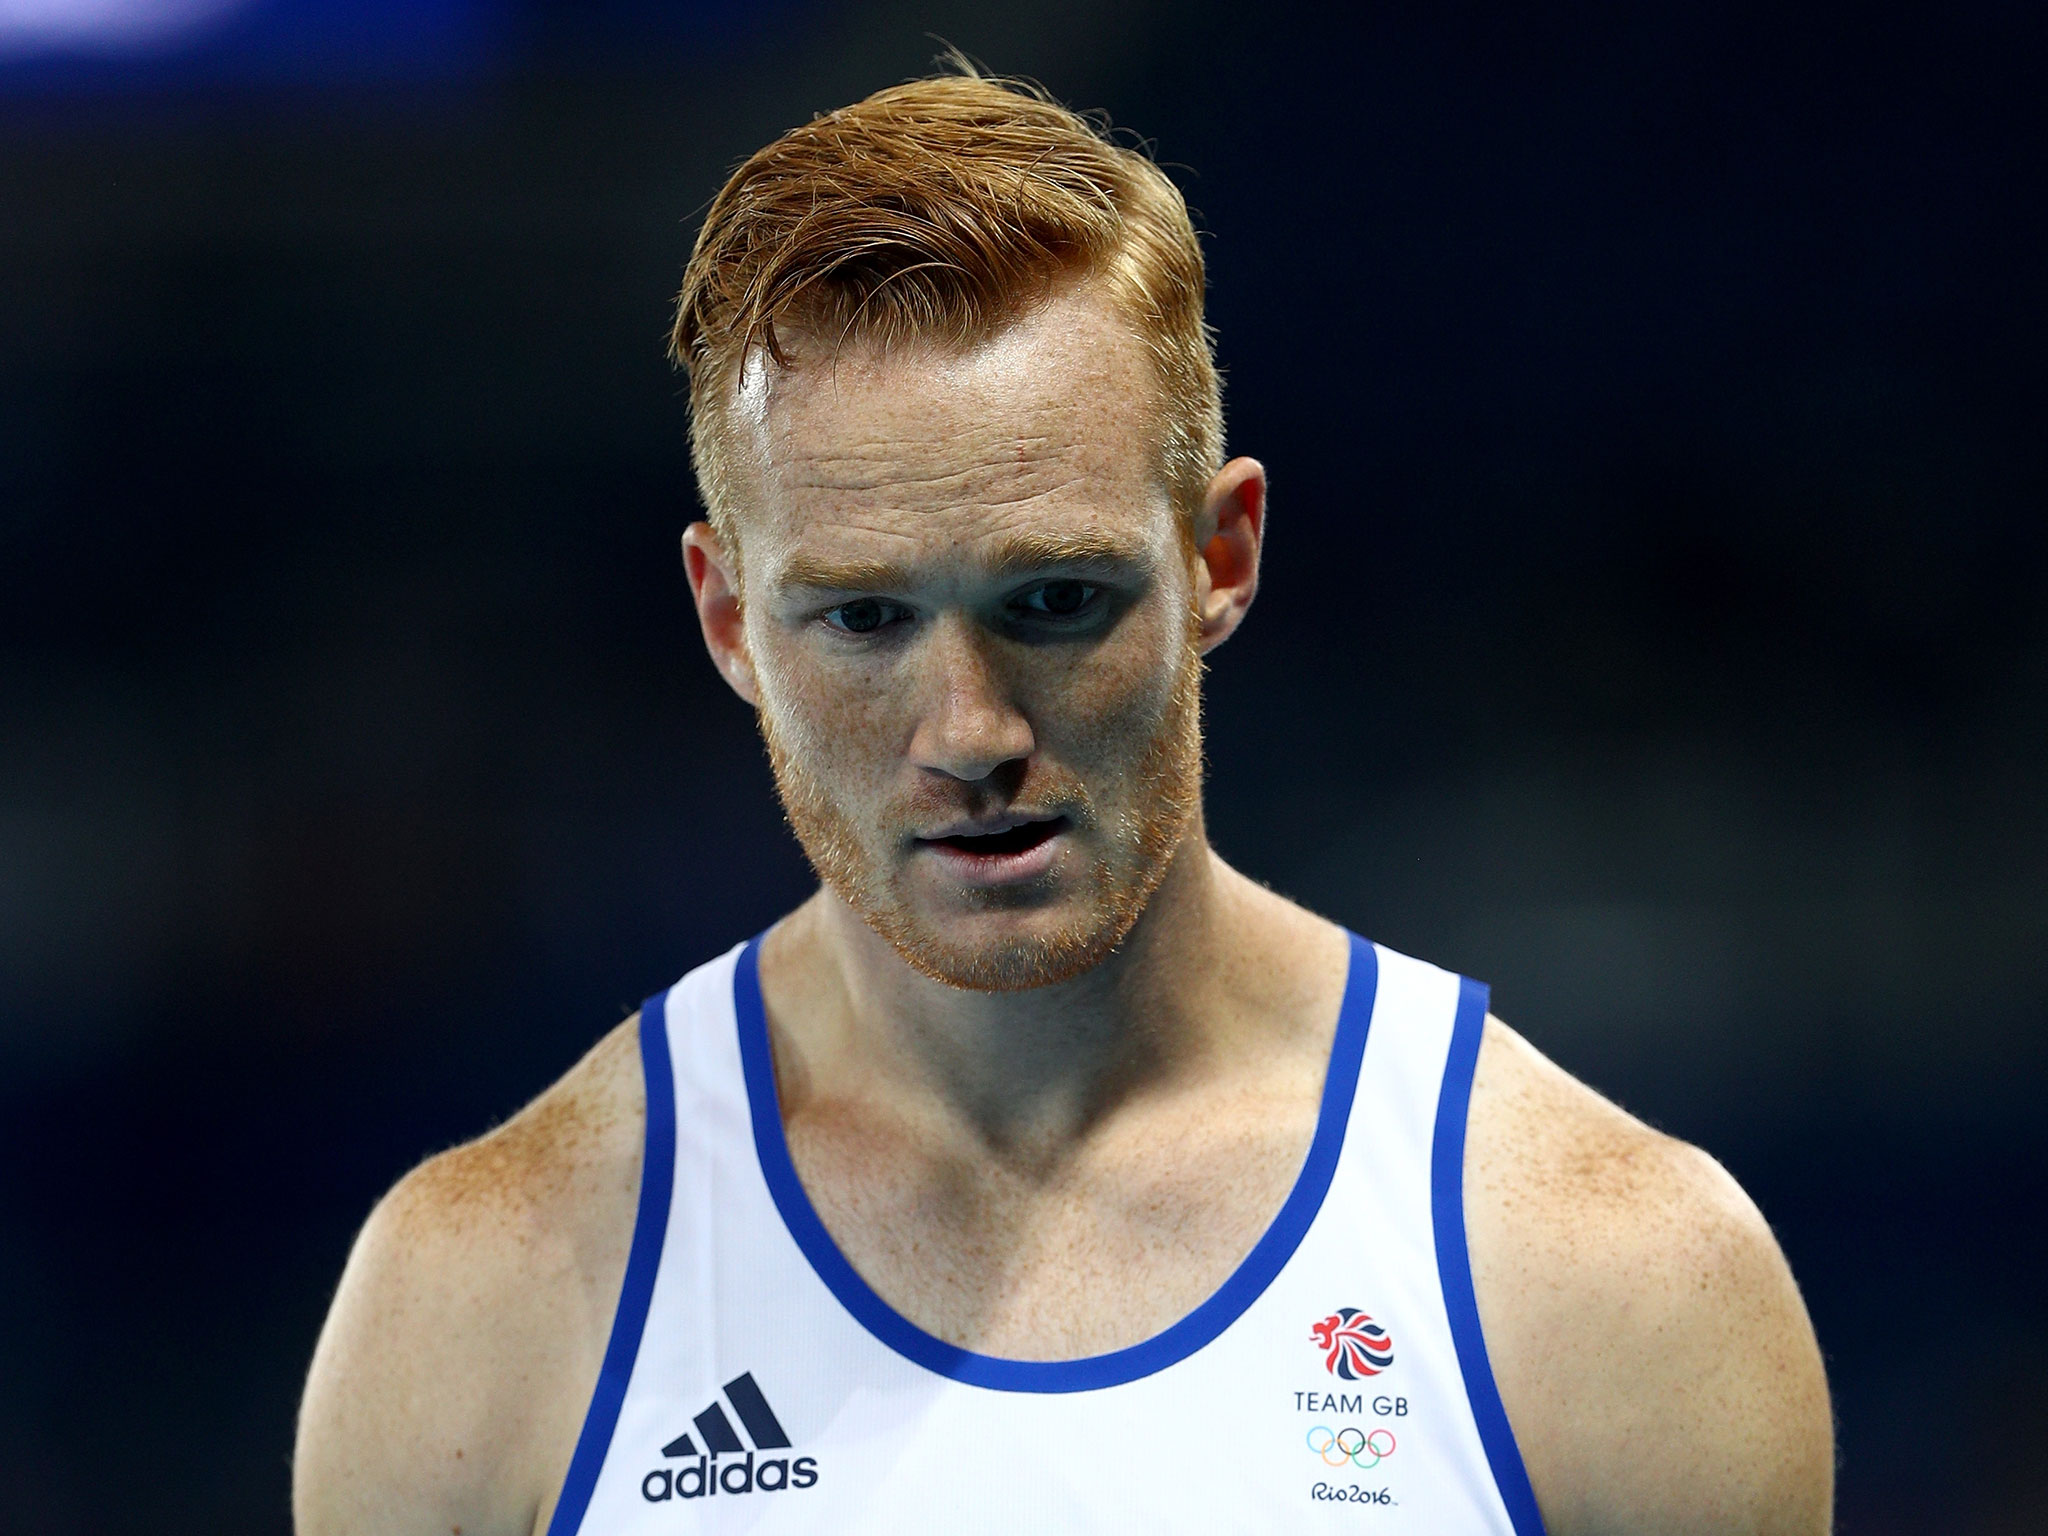 2048x1536 - Greg Rutherford Wallpapers 21